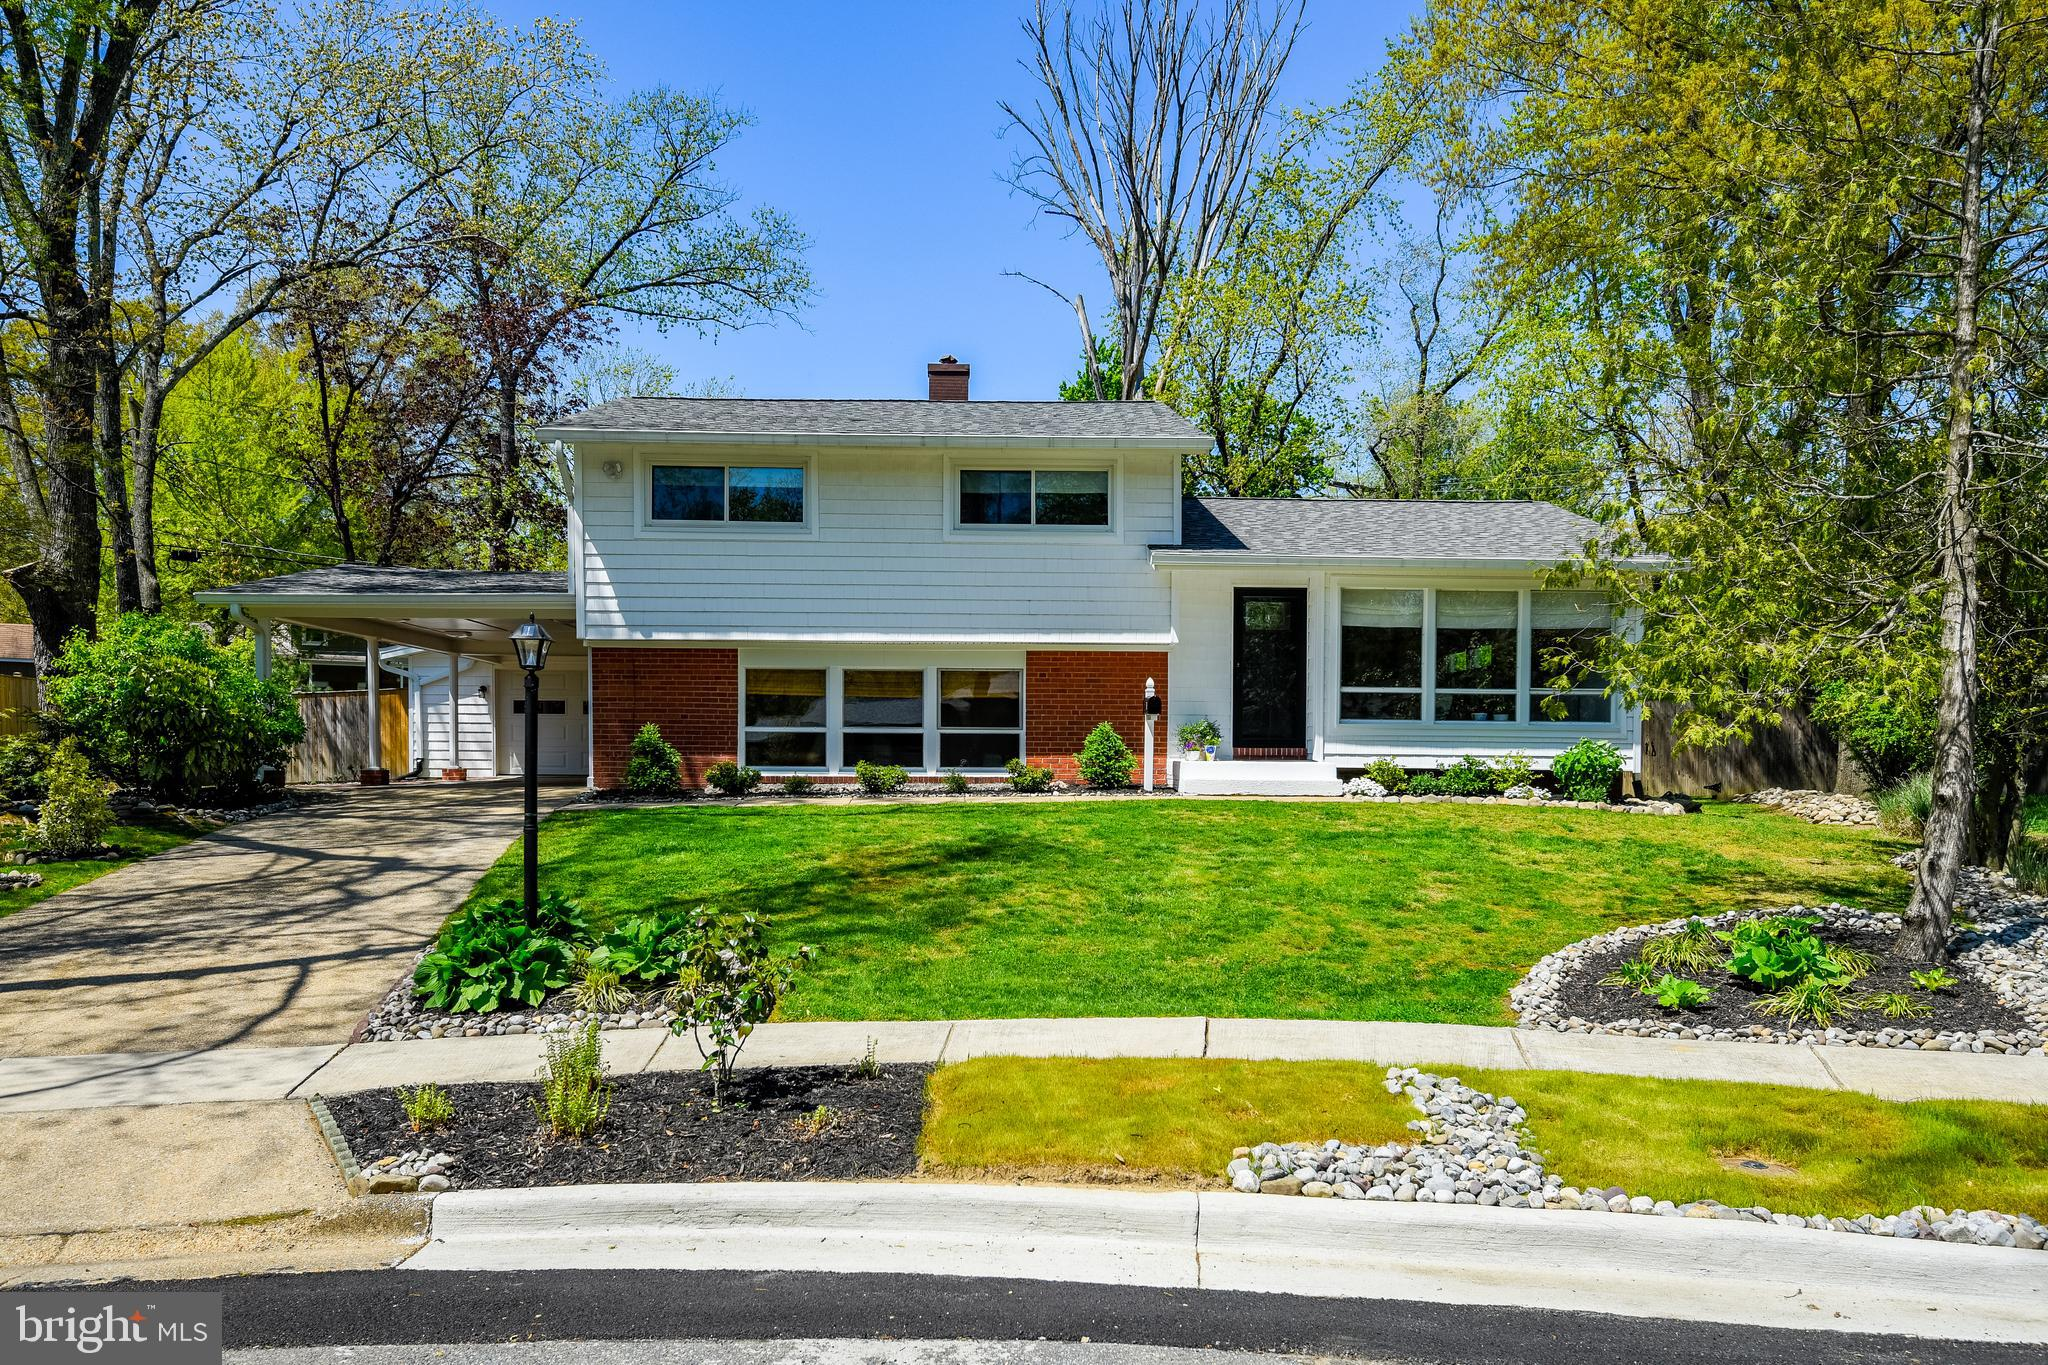 Welcome to this beautifully renovated home with over 2,550 sq. ft of living space in the heart of Se